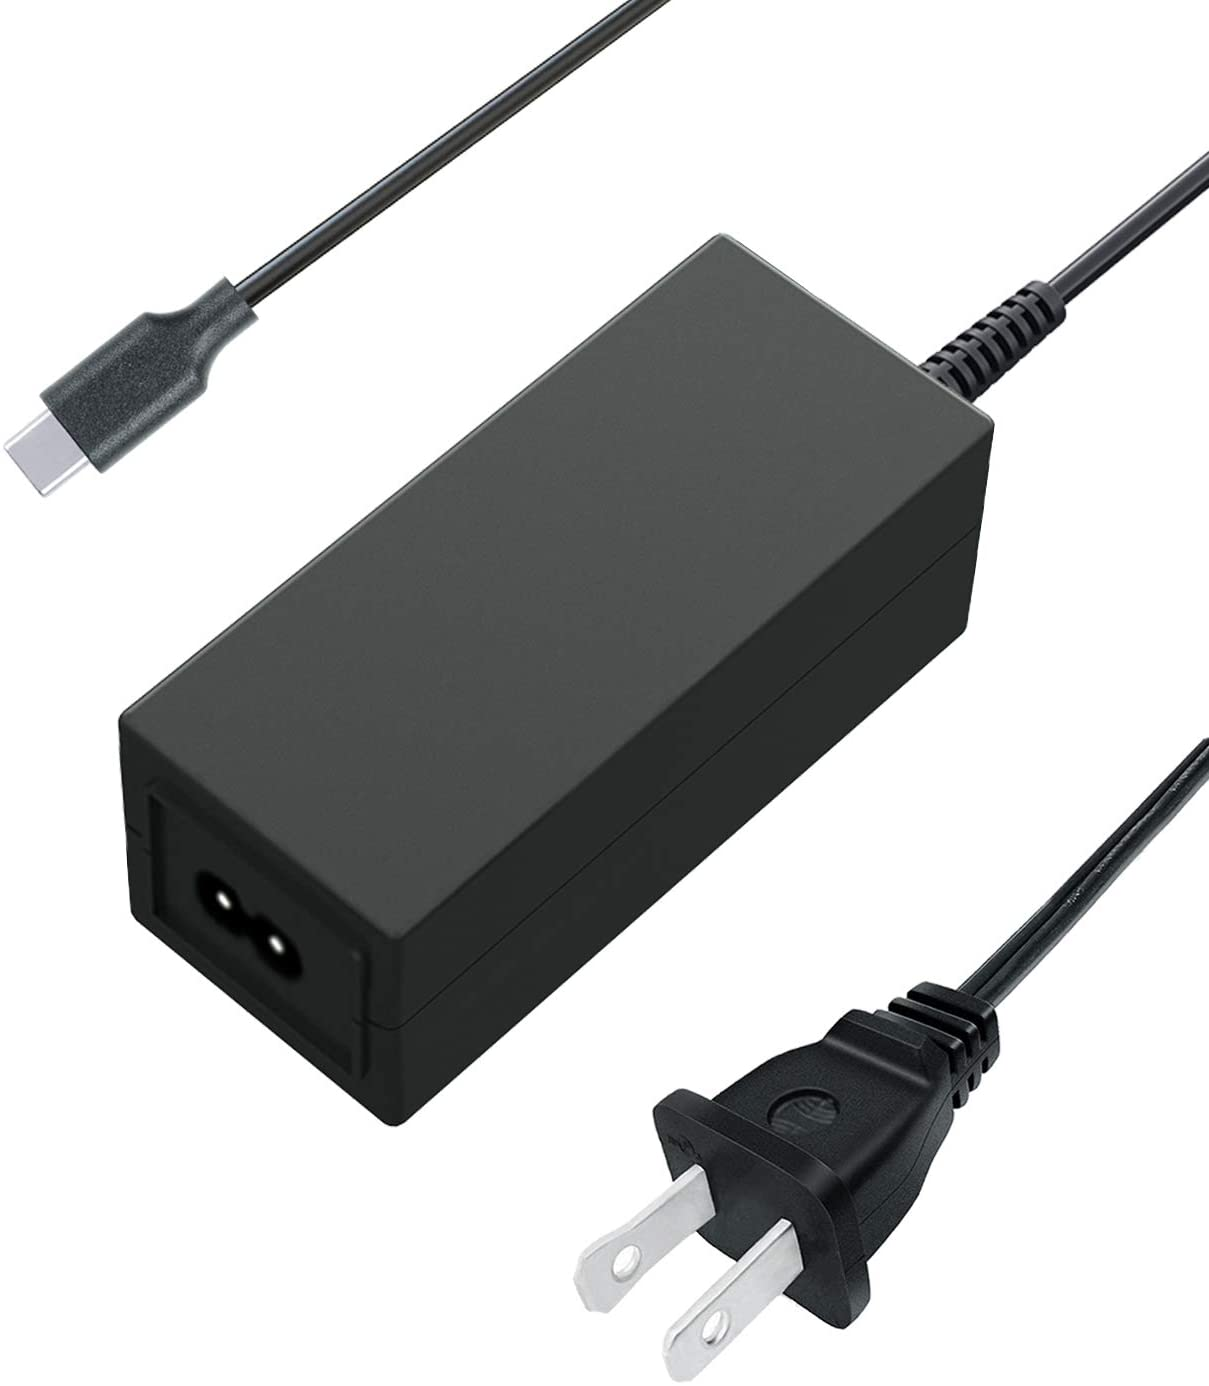 Saireed UL Type C AC Charger for Acer Chromebook 11 C732 C732T C732L C732LT C732-C6WU C771 C771-C4TM C771T C771T-56G3,Spin 11 R751T R751TN R751TN-C5P3 Laptop Power USB C Adapter 12Ft Cord